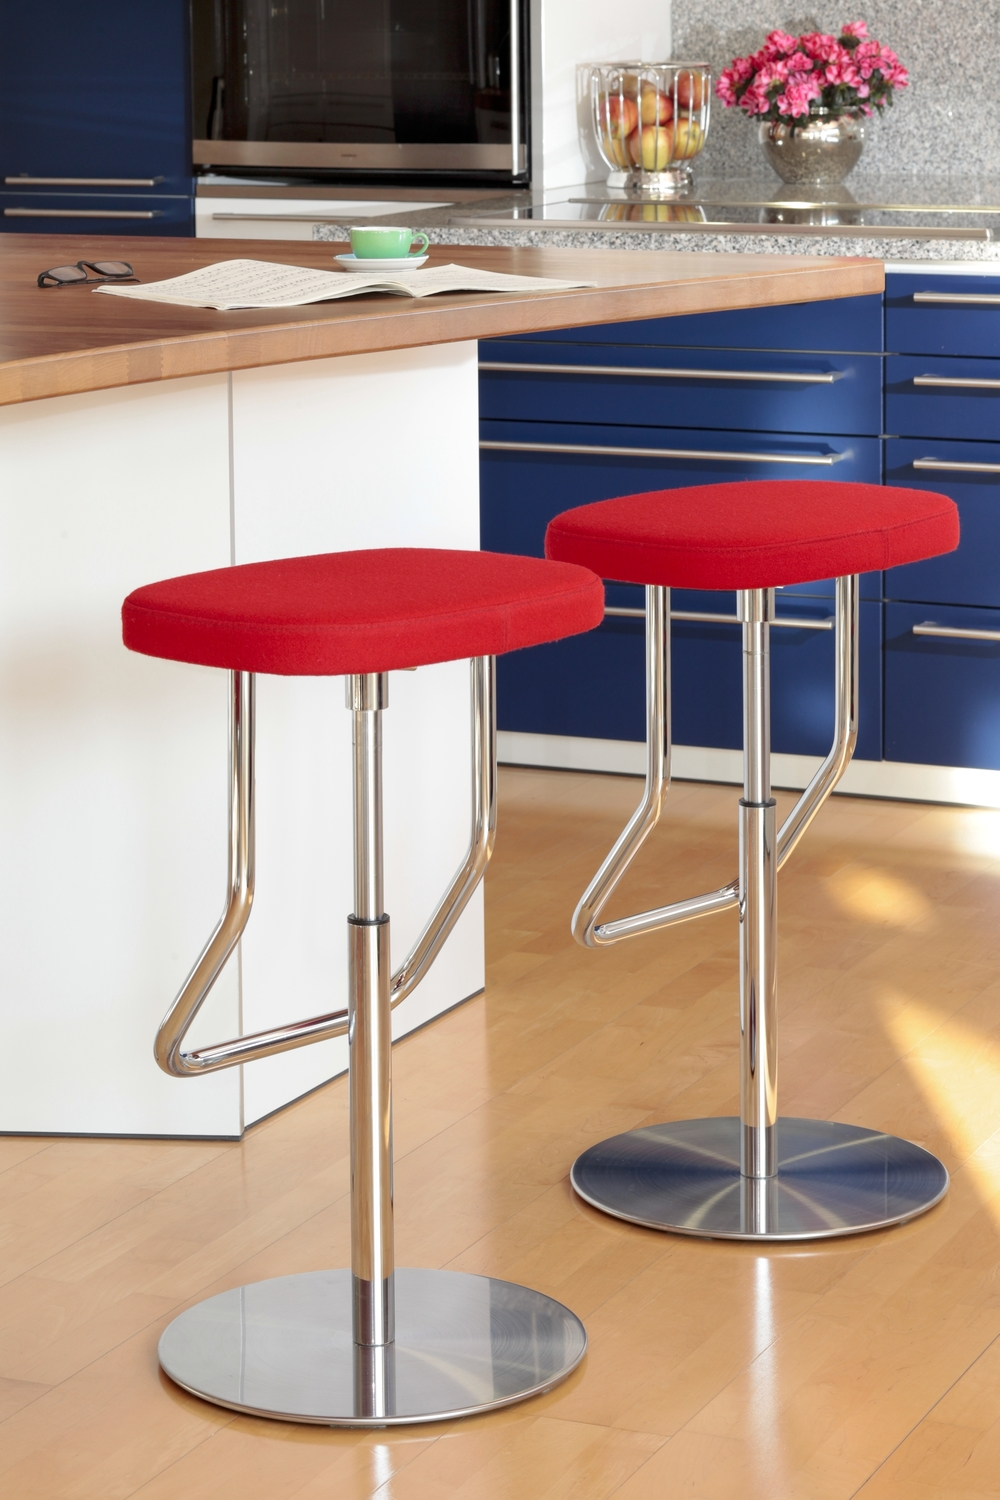 S123 Stool by Thonet